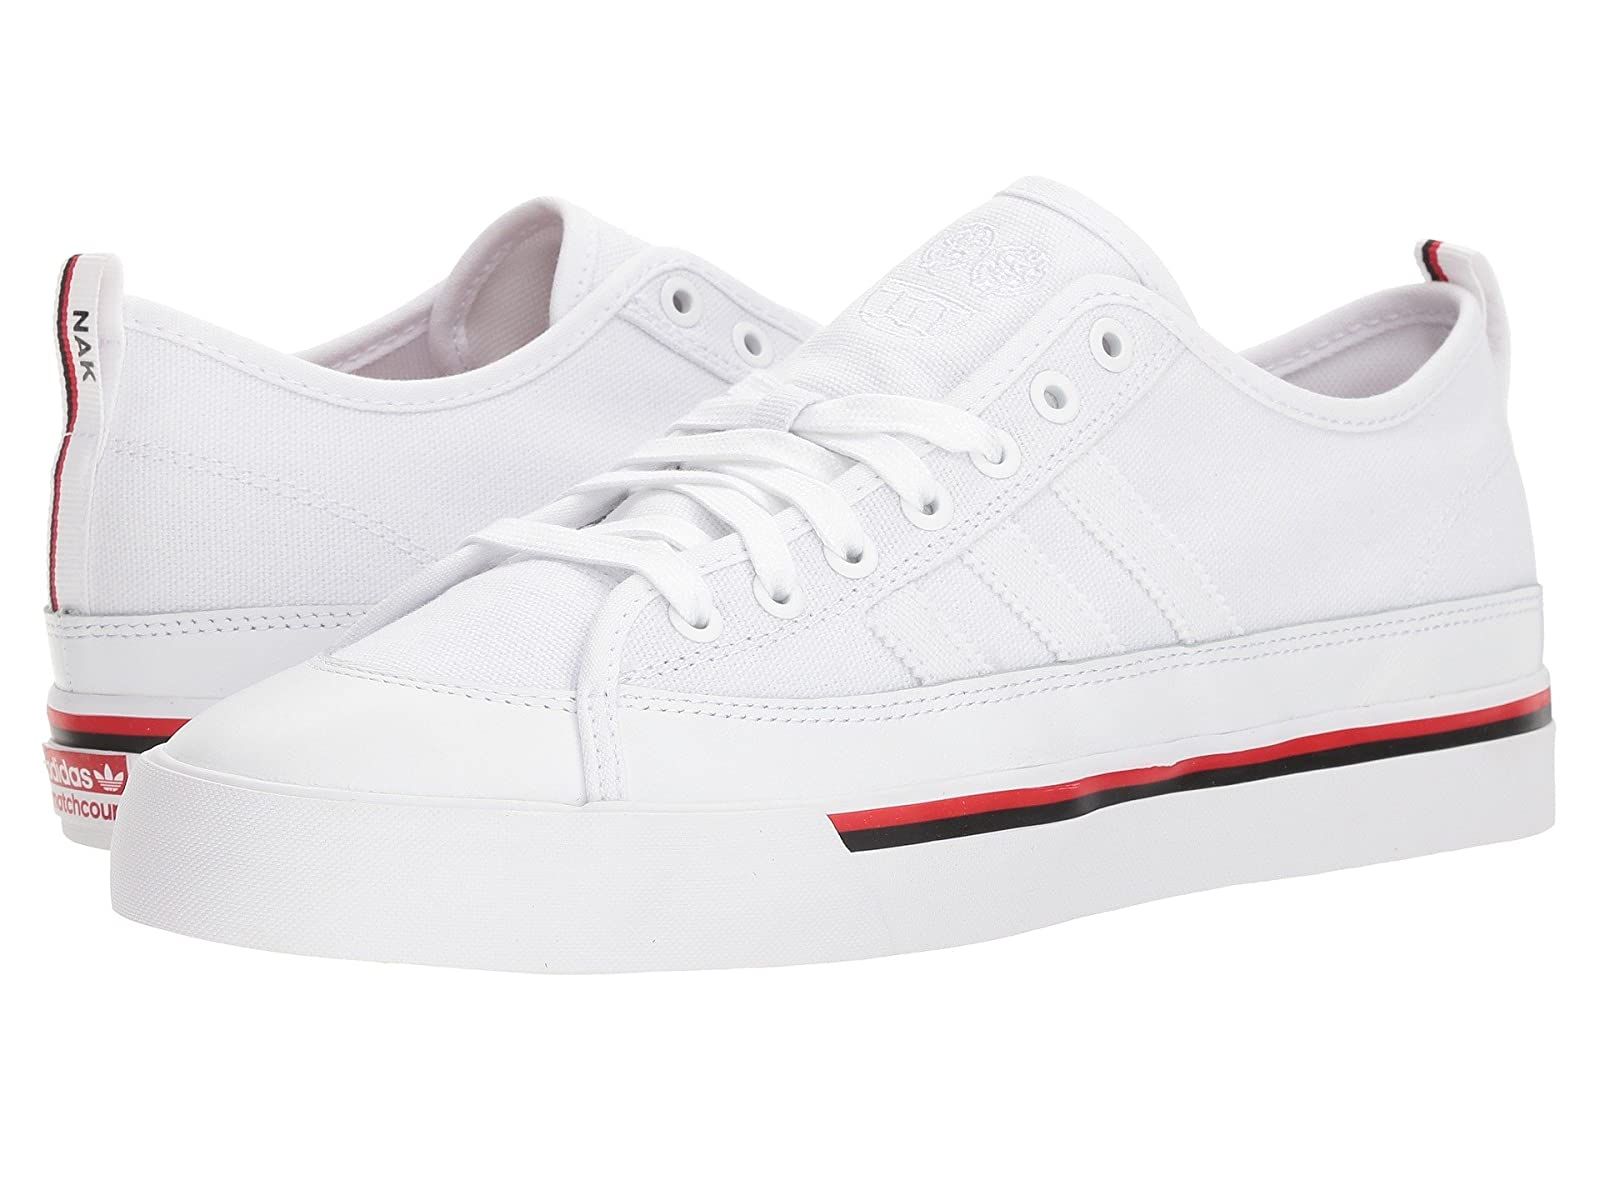 adidas Skateboarding Matchcourt RXStylish and characteristic shoes